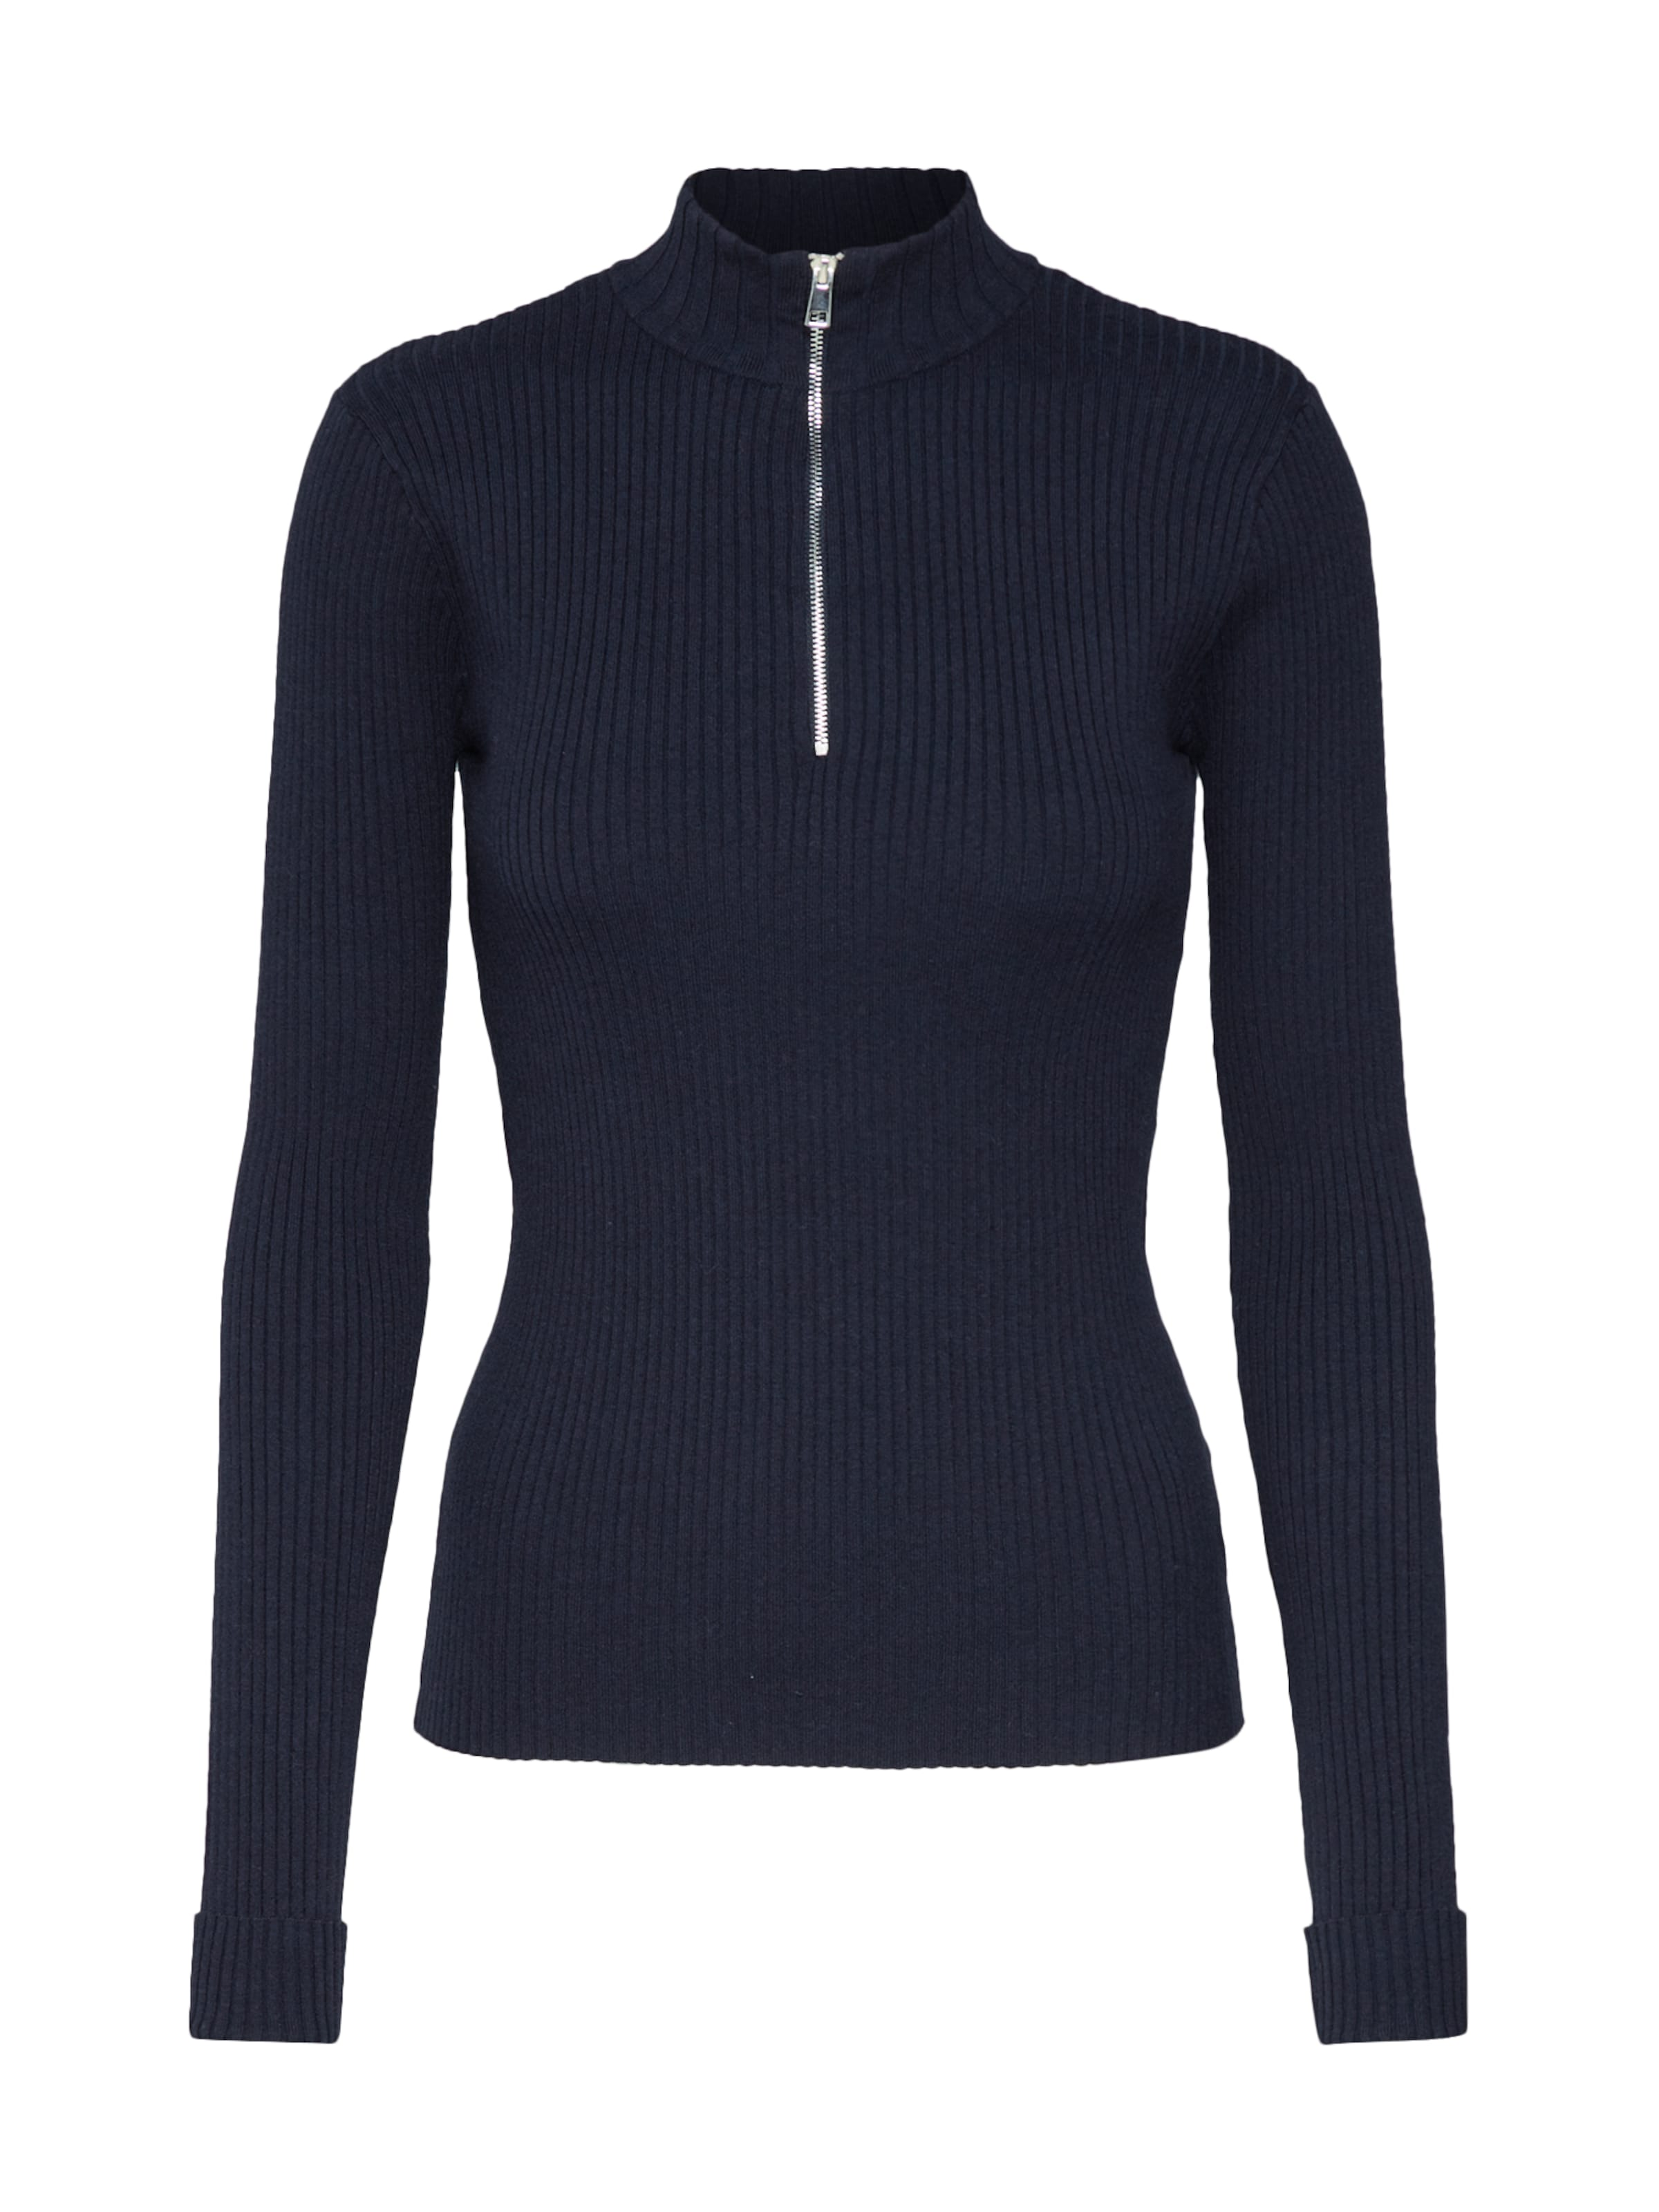 'alison' Edited Pull over En Bleu lcFKJT31